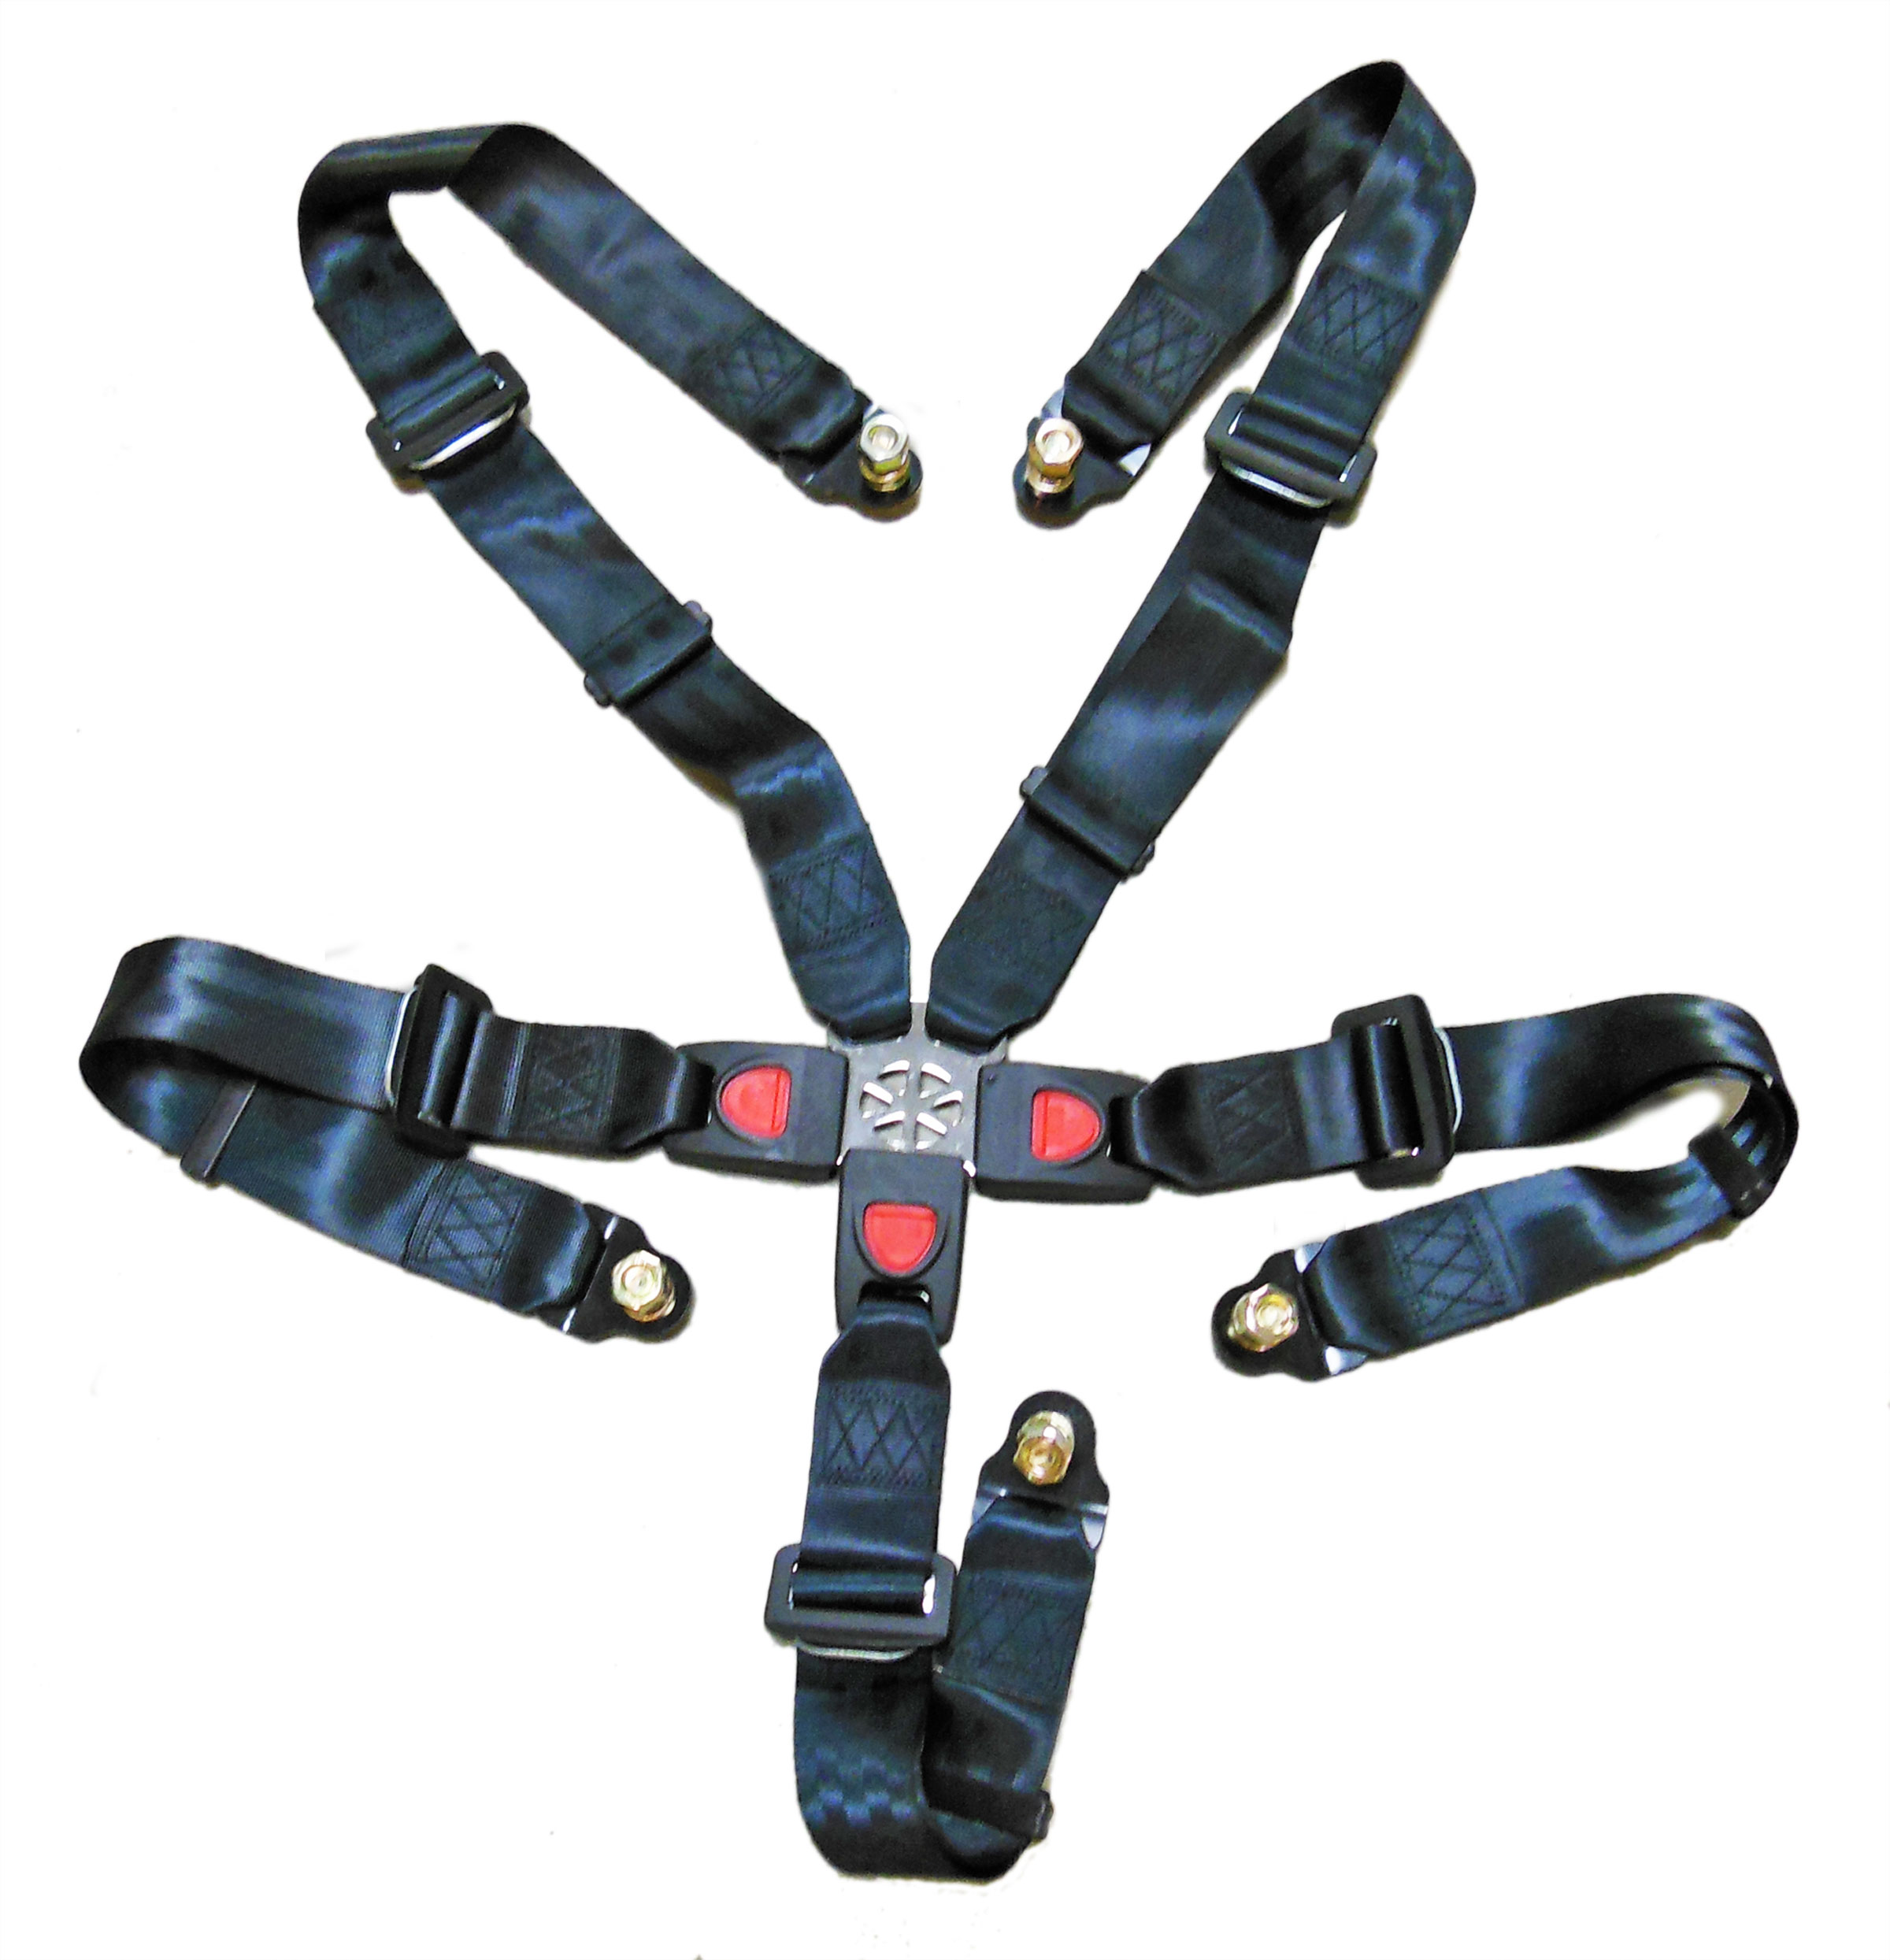 5 point seat belt shoulder harness 6 000 354 501116 bmi karts and motorocycle parts